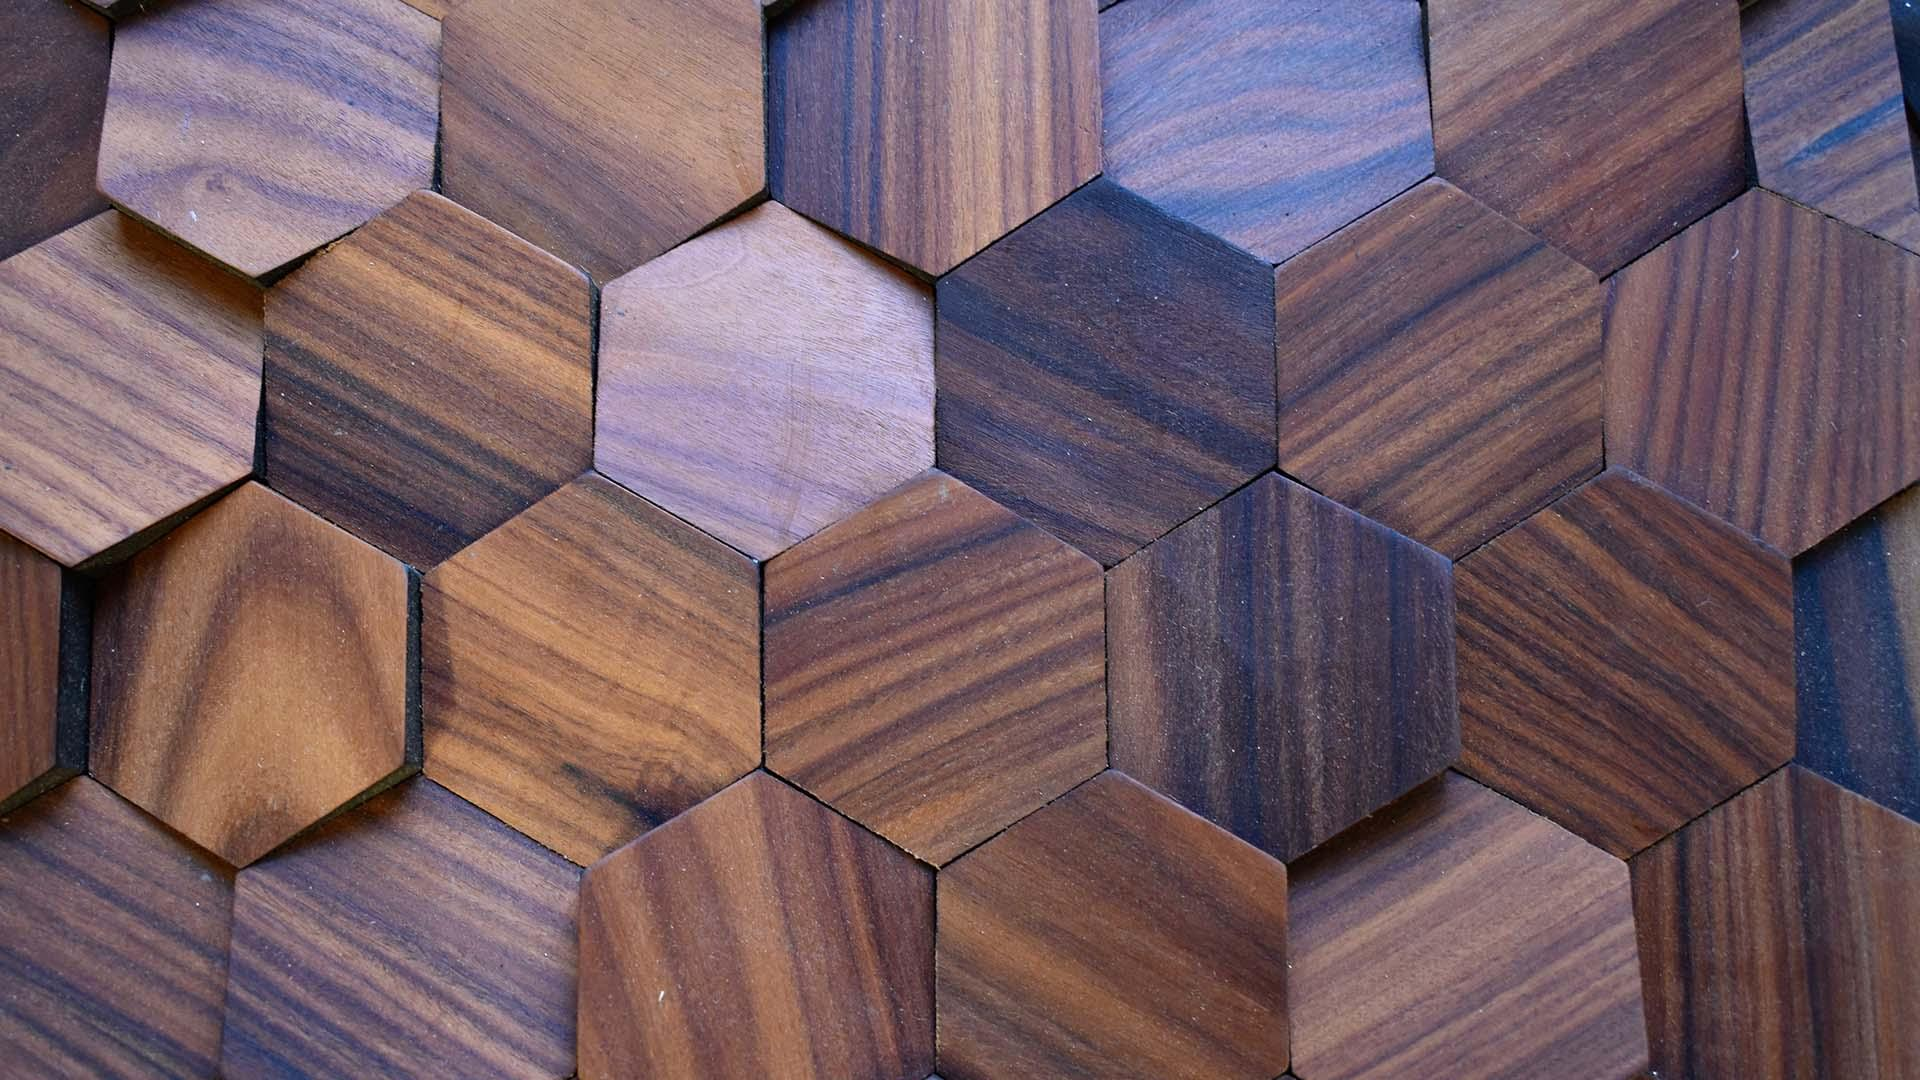 Textured wood material in hexagons